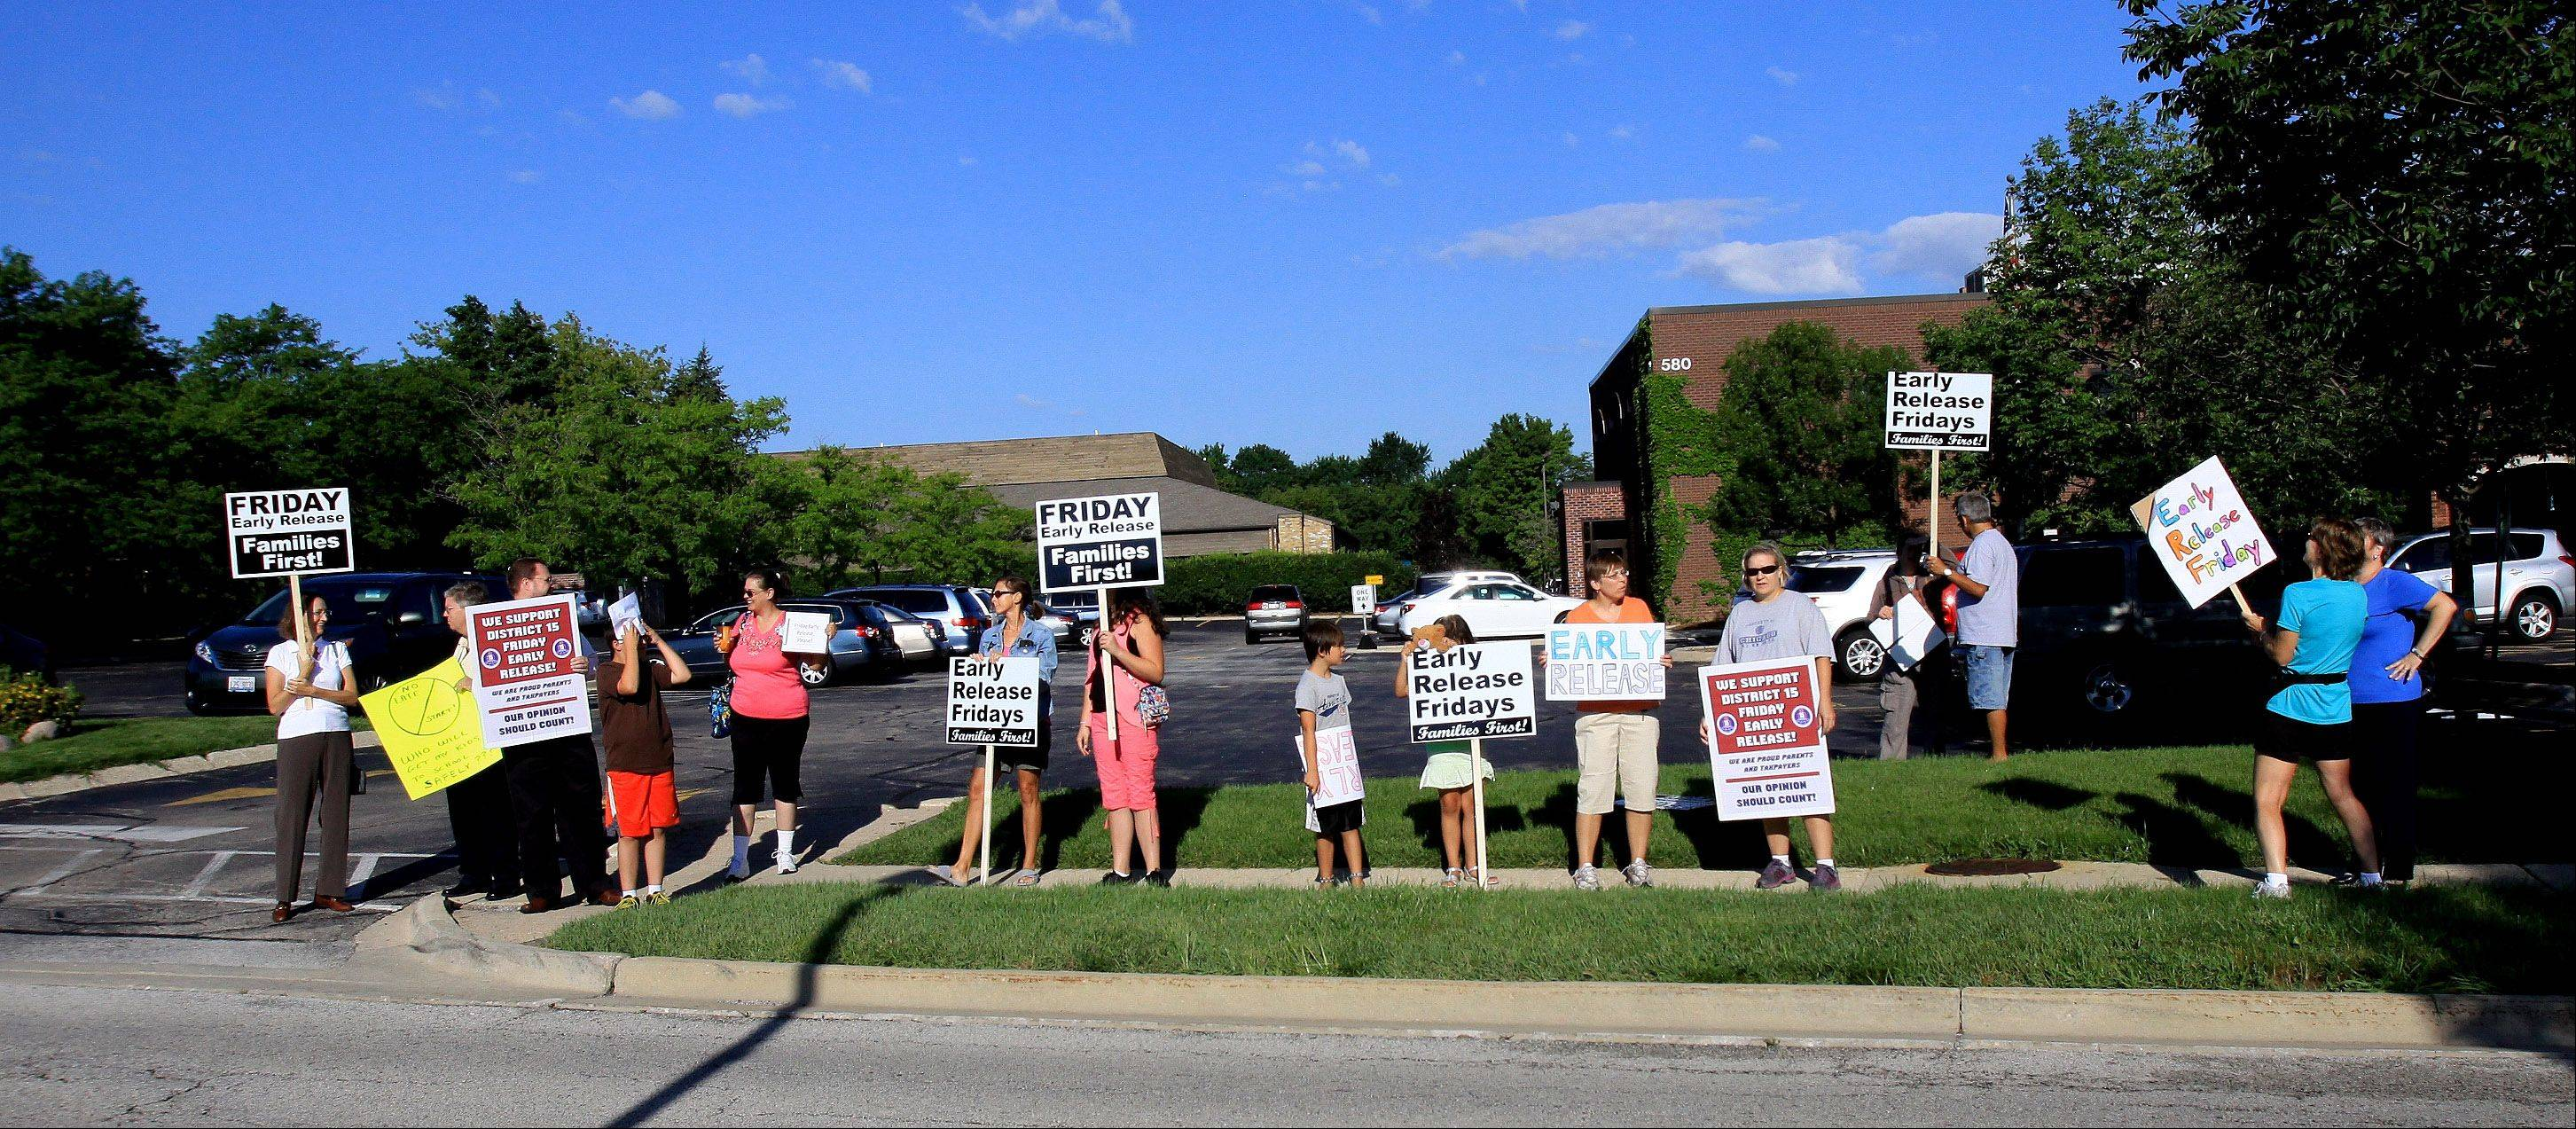 Parents and students rally before an arbitration hearing Thursday to oppose the late start scheduling option favored by the Palatine Township Elementary District 15 teachers union.